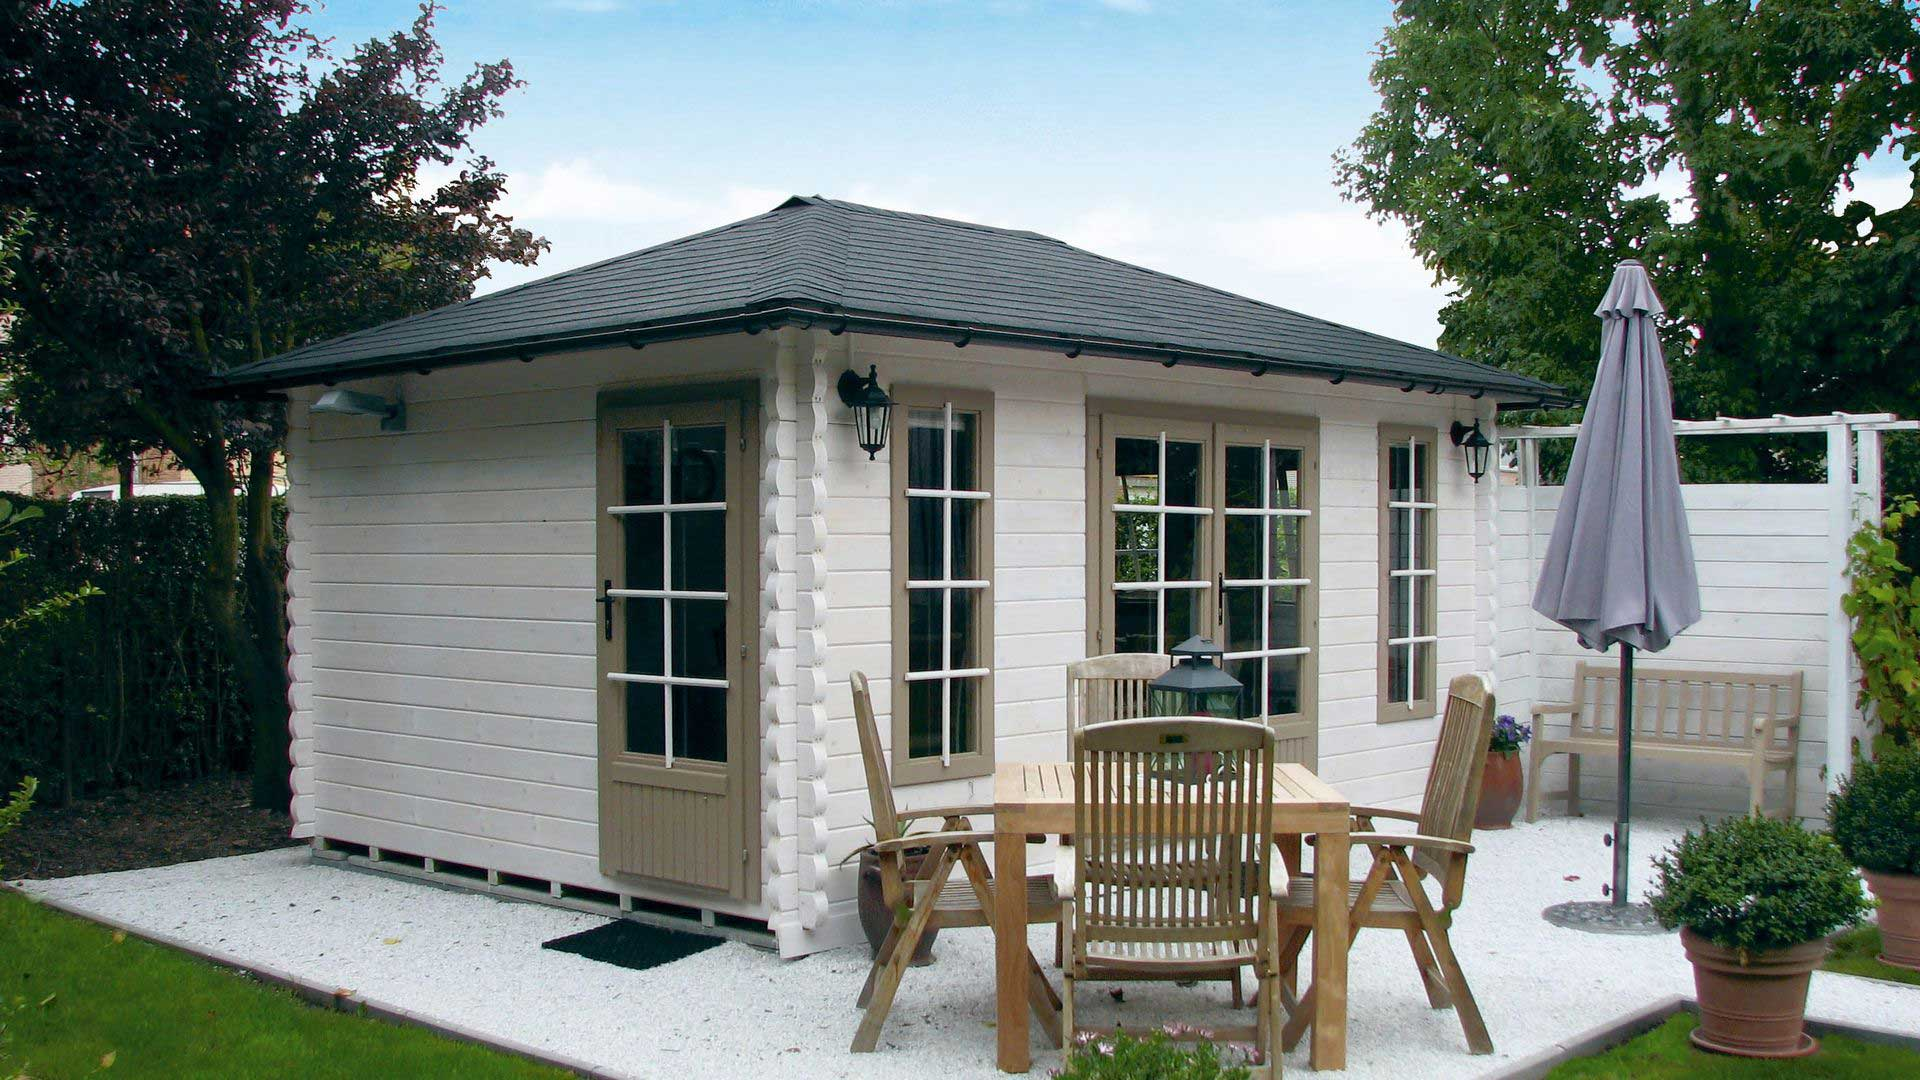 Keops Interlock log cabins with pyramid style roof